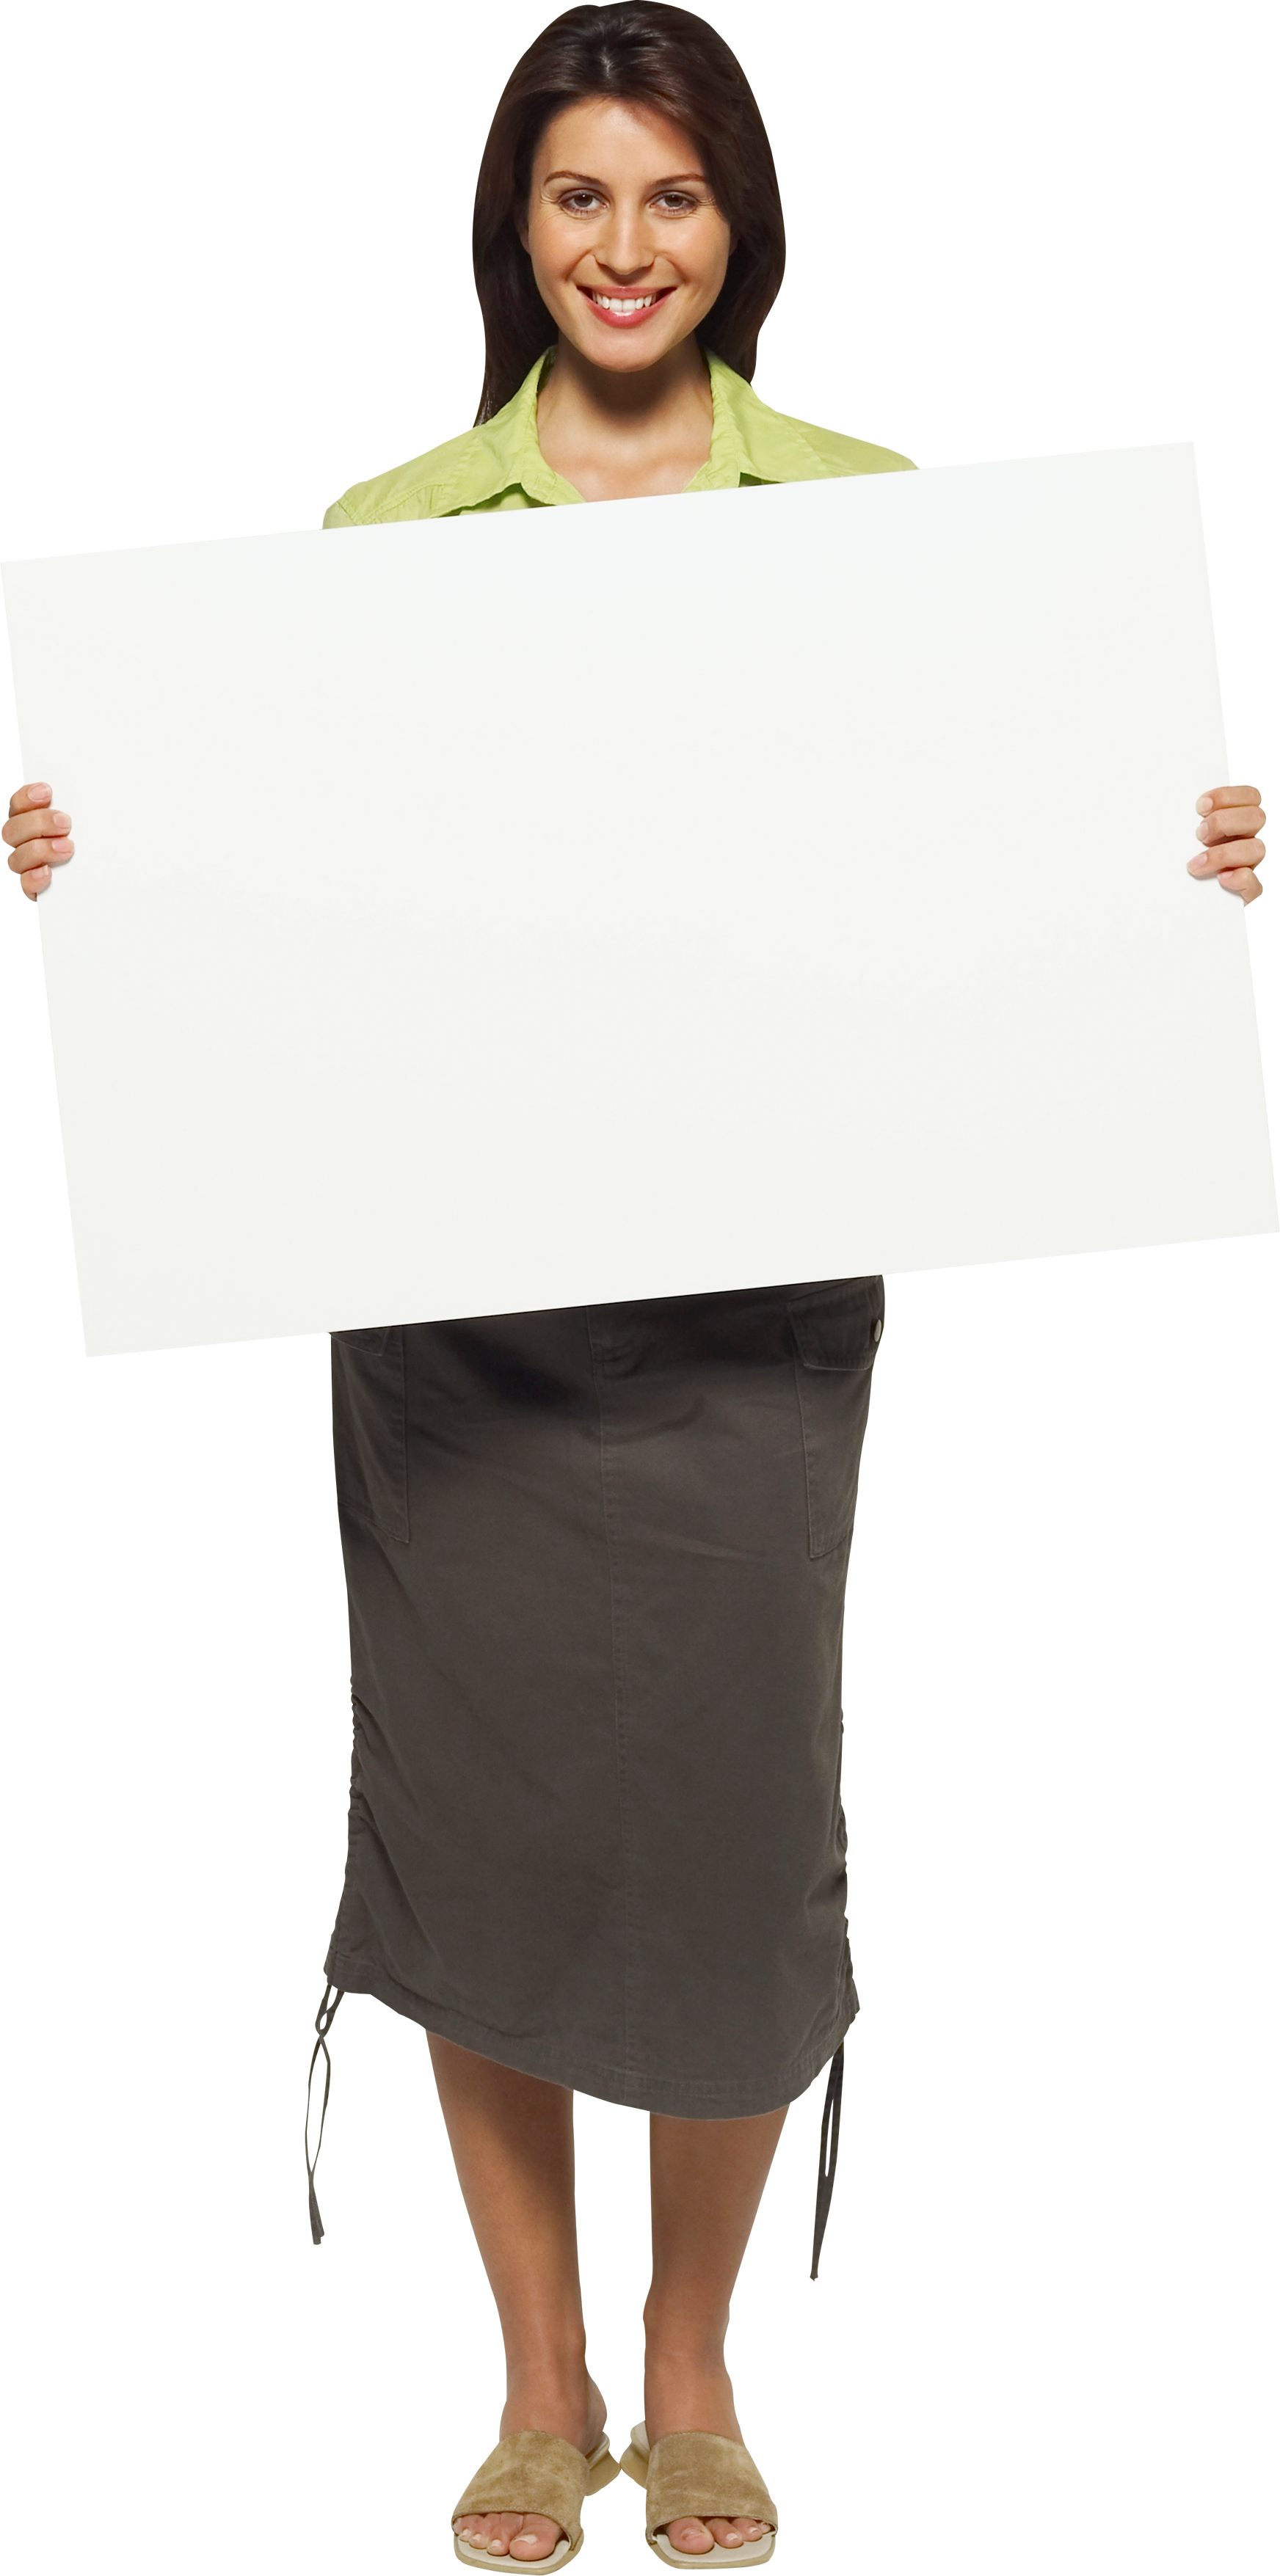 Business woman girl PNG image